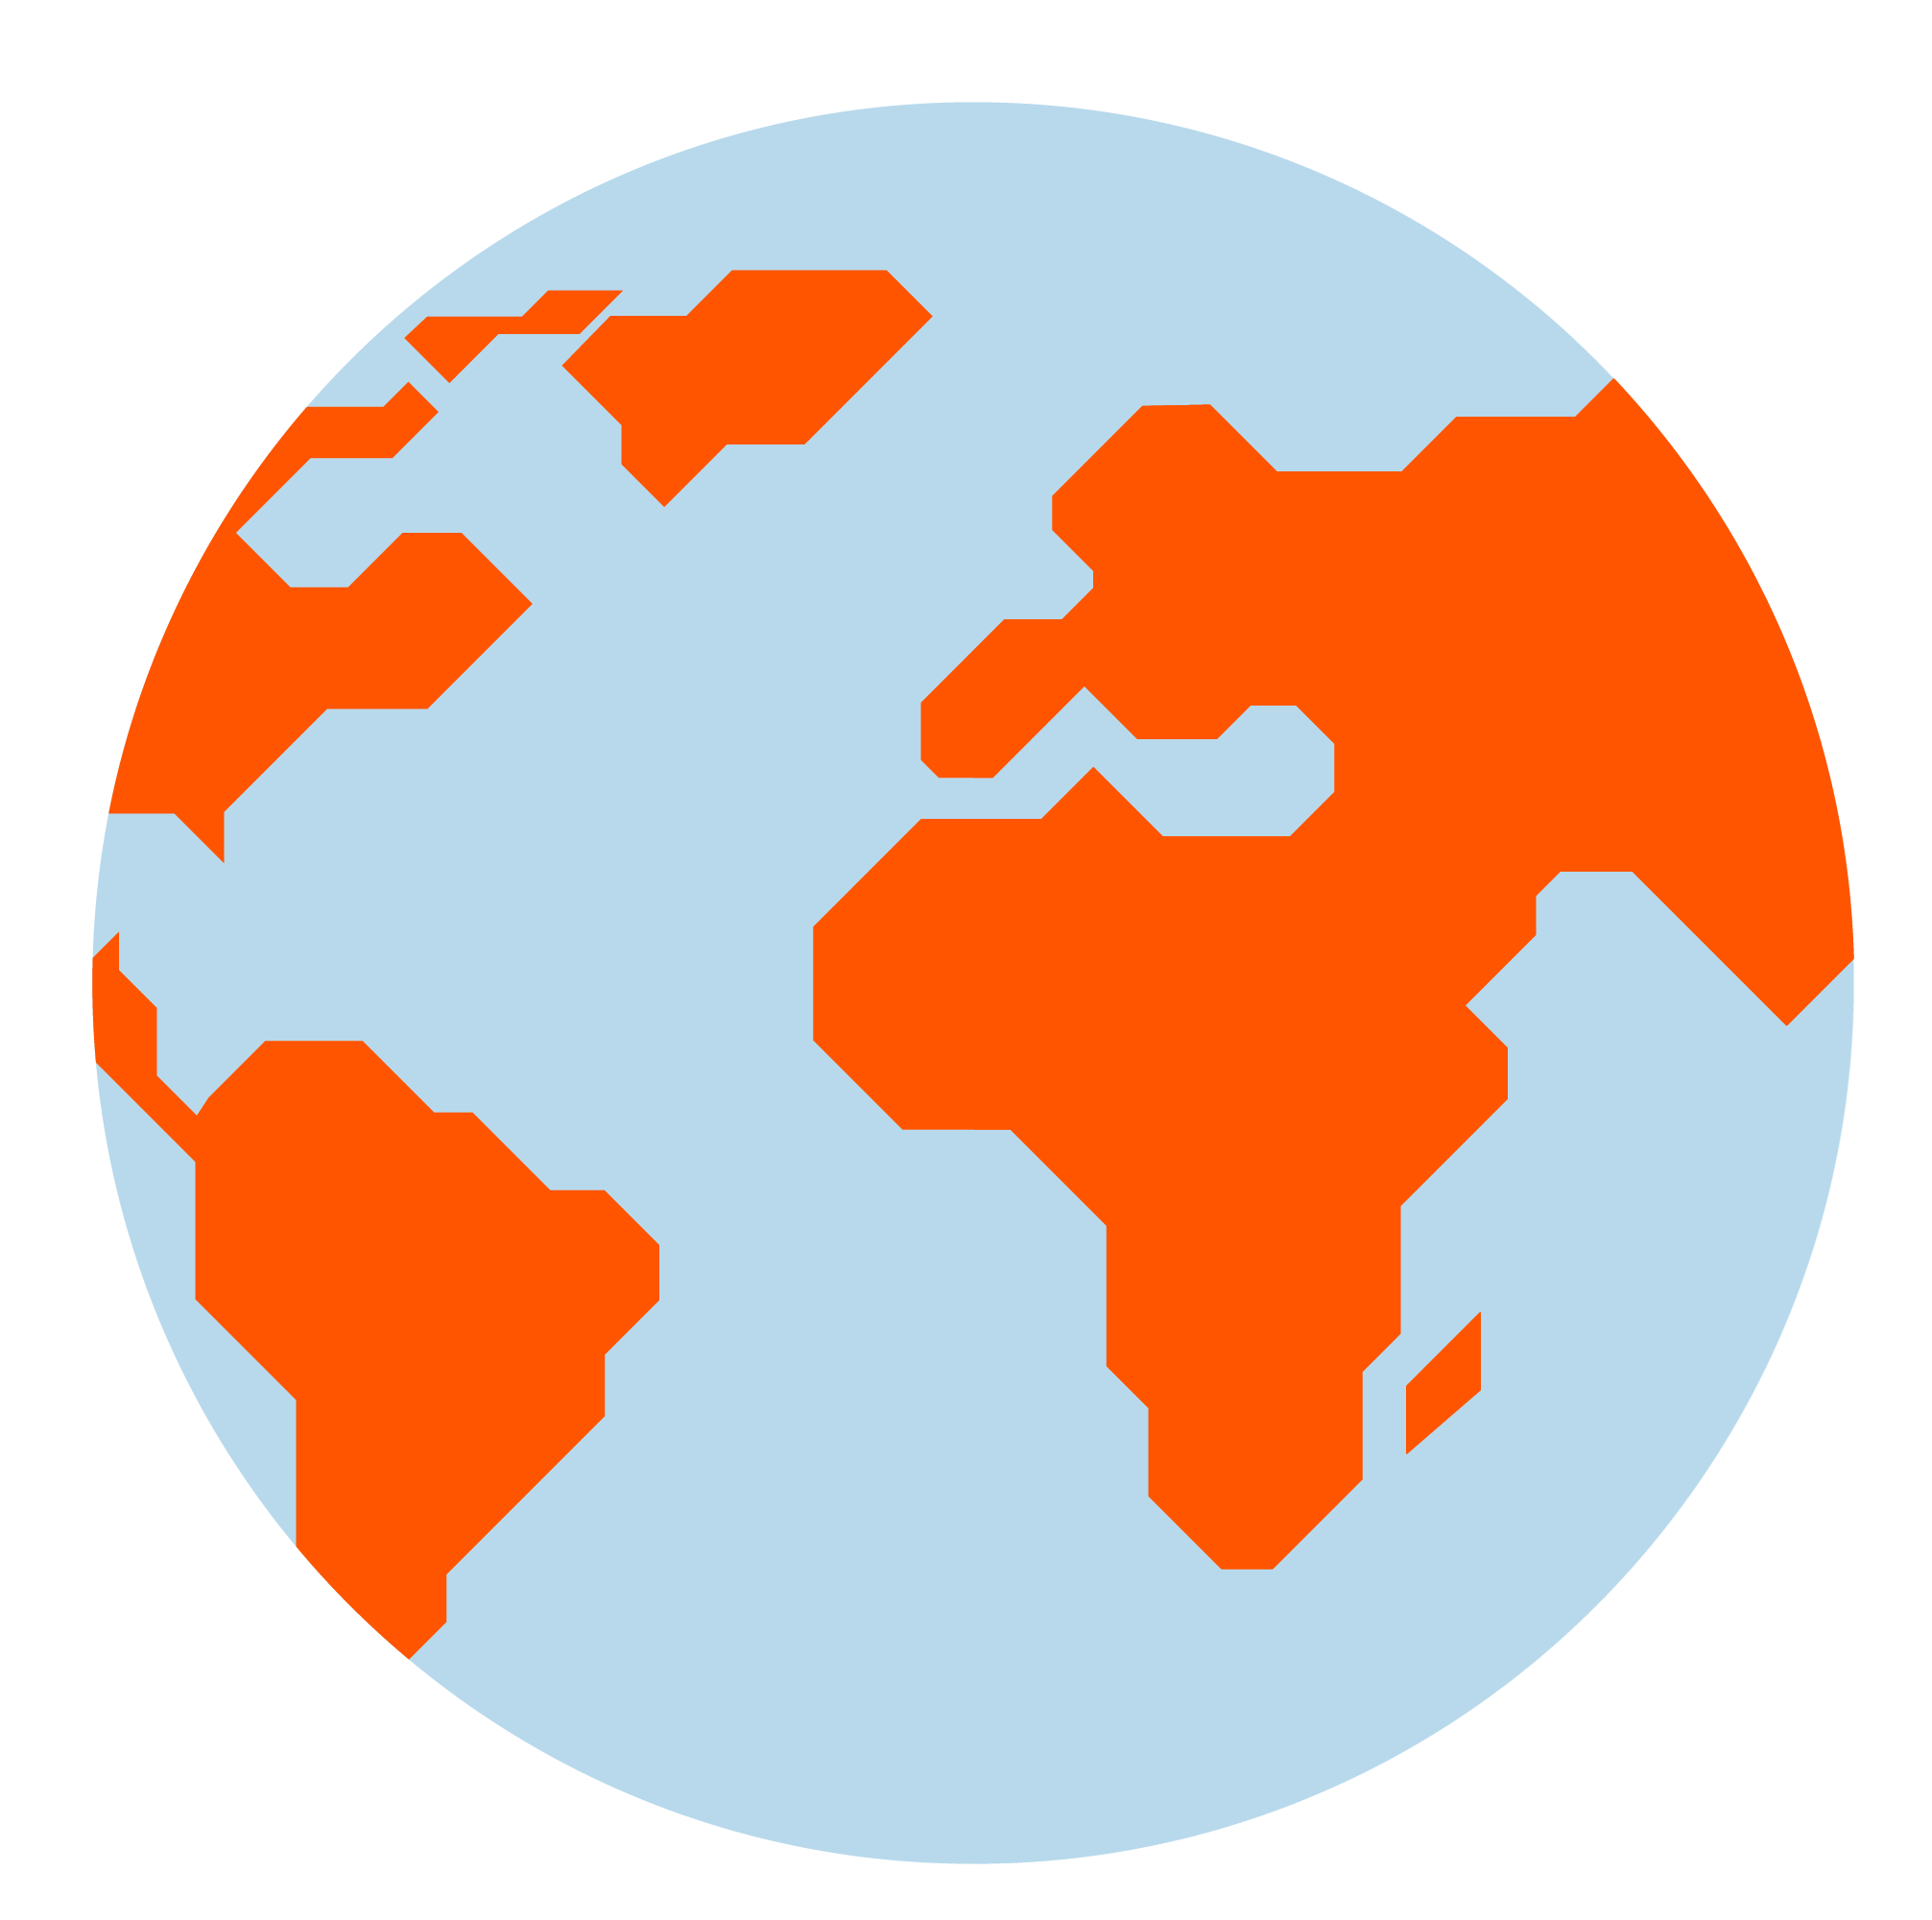 Geography clipart atlas. Introduction to clustering with